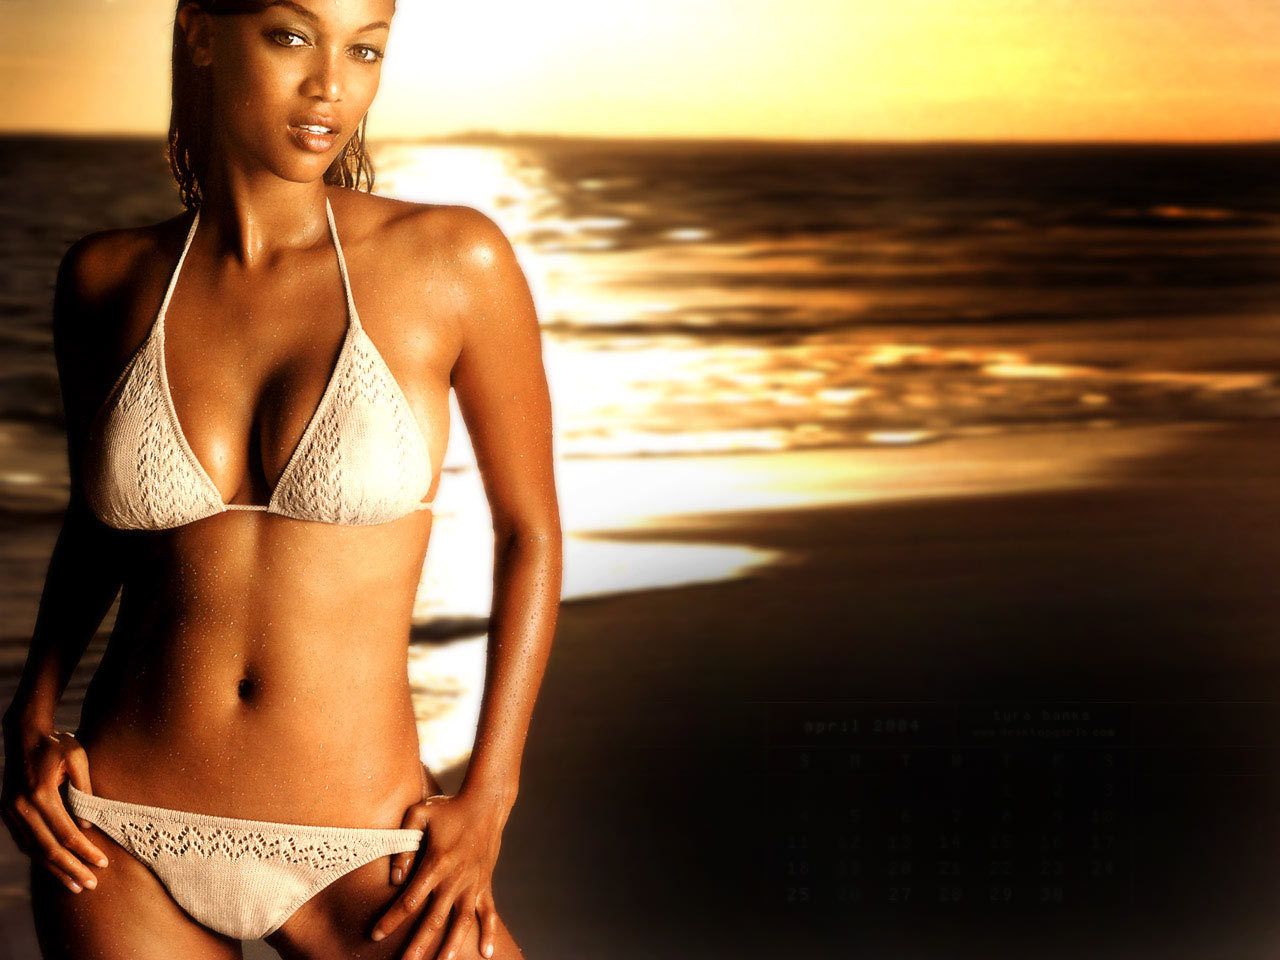 http://images1.fanpop.com/images/photos/1900000/swim-wear-tyra-banks-1963569-1280-960.jpg